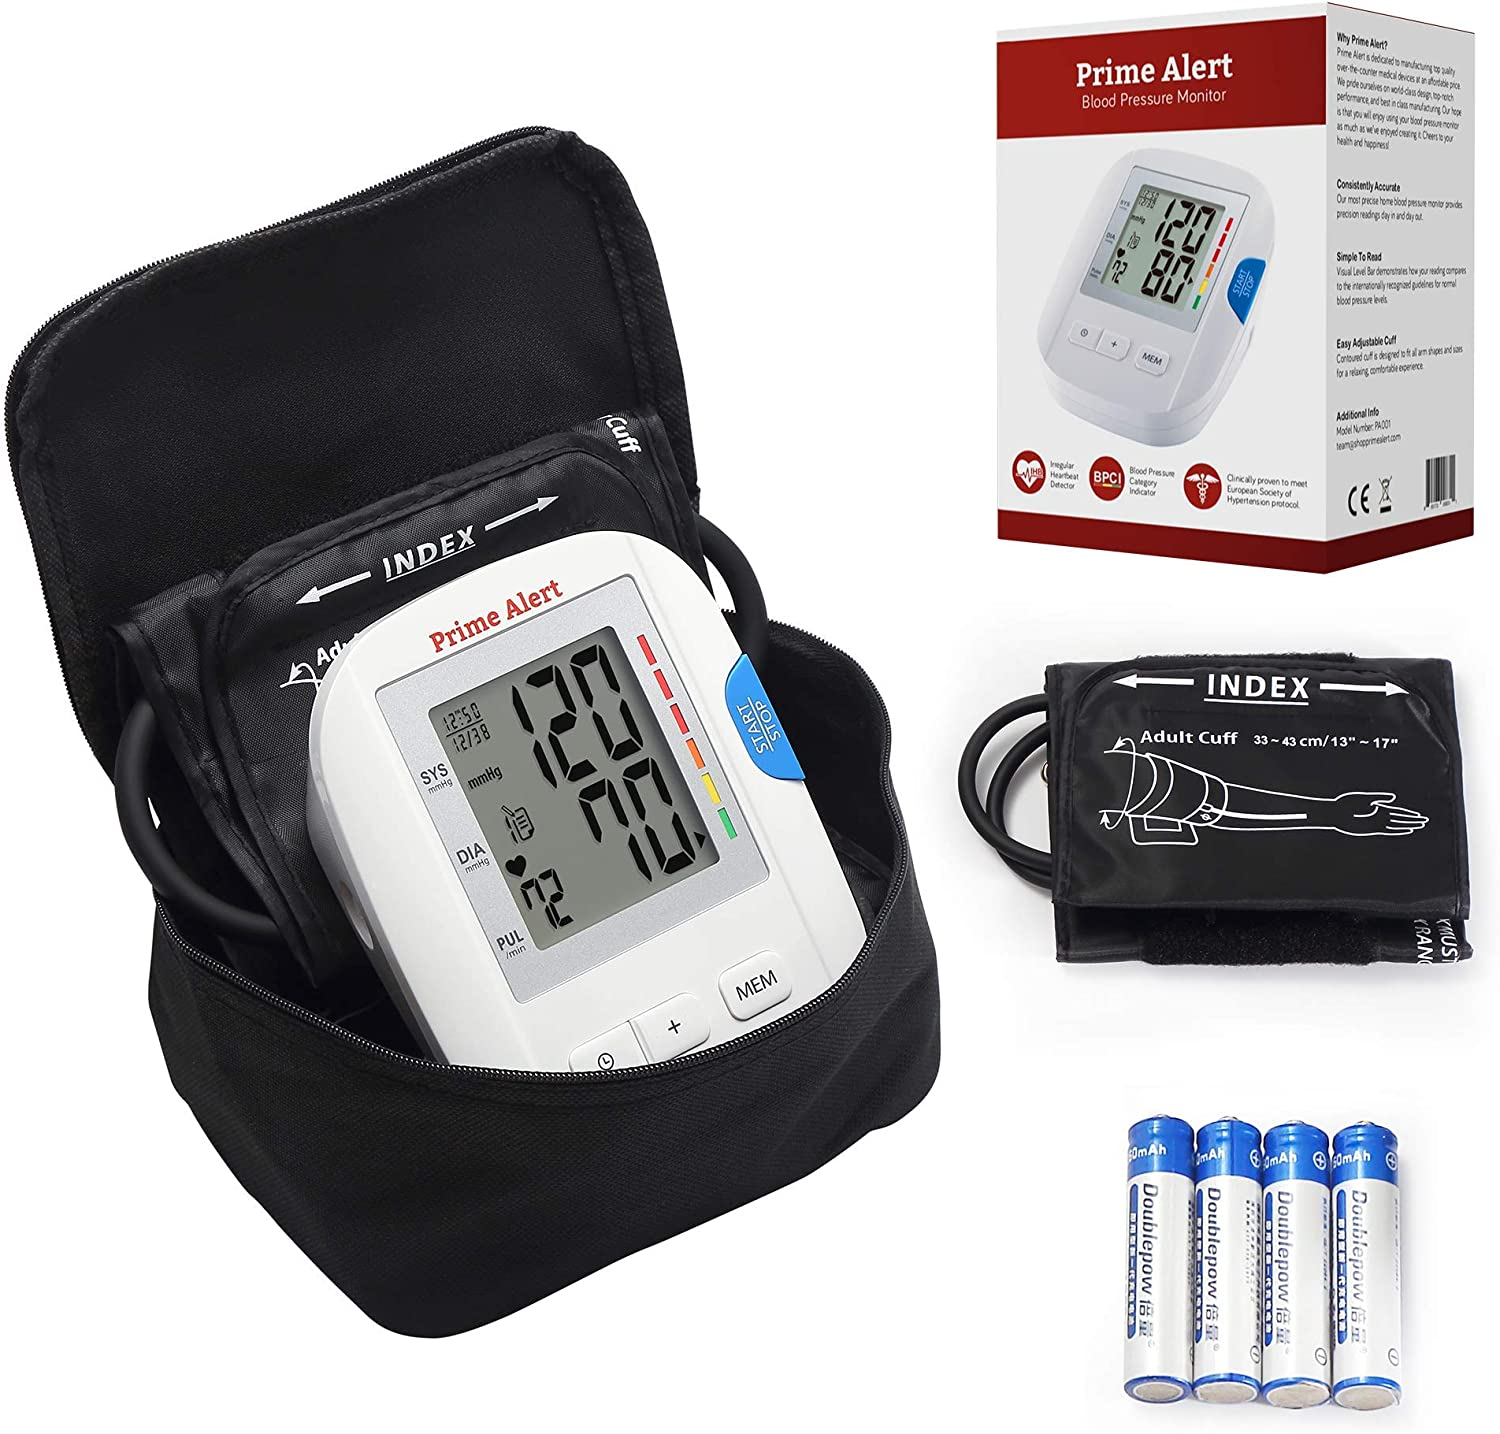 Prime Alert Blood Pressure Monitor FDA Approved Fully Automatic Upper Arm Heart Rate Machine With Large LCD Display 2 Cuff Sizes, Travel Case, Batteries, 120 Internal Memory Storage Included